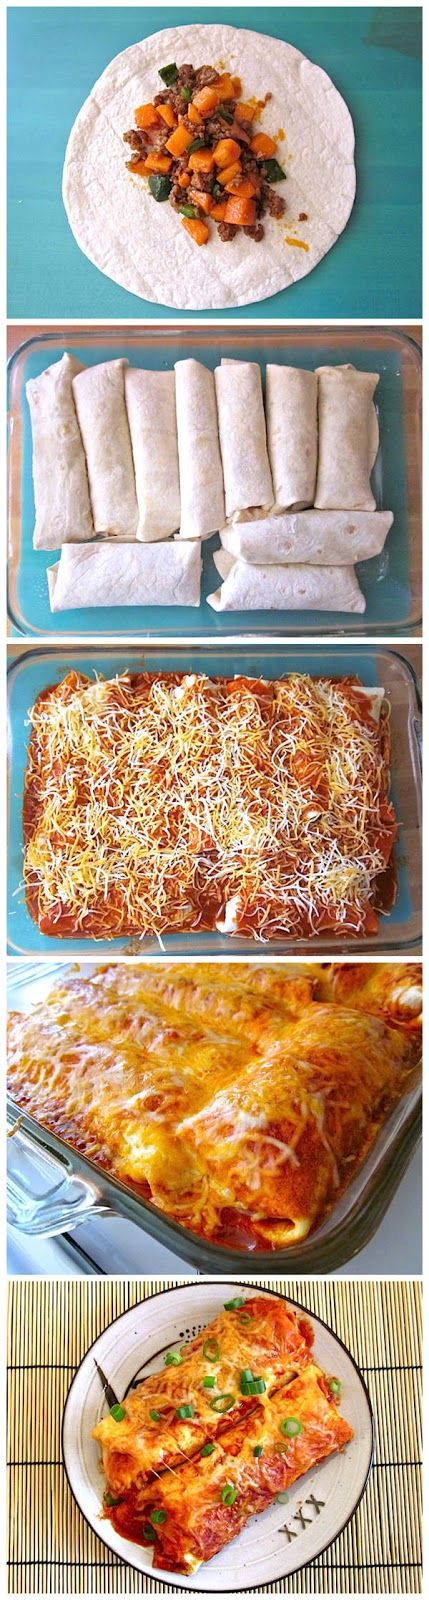 Chorizo & Sweet Potato Enchiladas - A combination worth trying. Fed this to five people and everyone was in love with it. This will become a regular in the rotation.